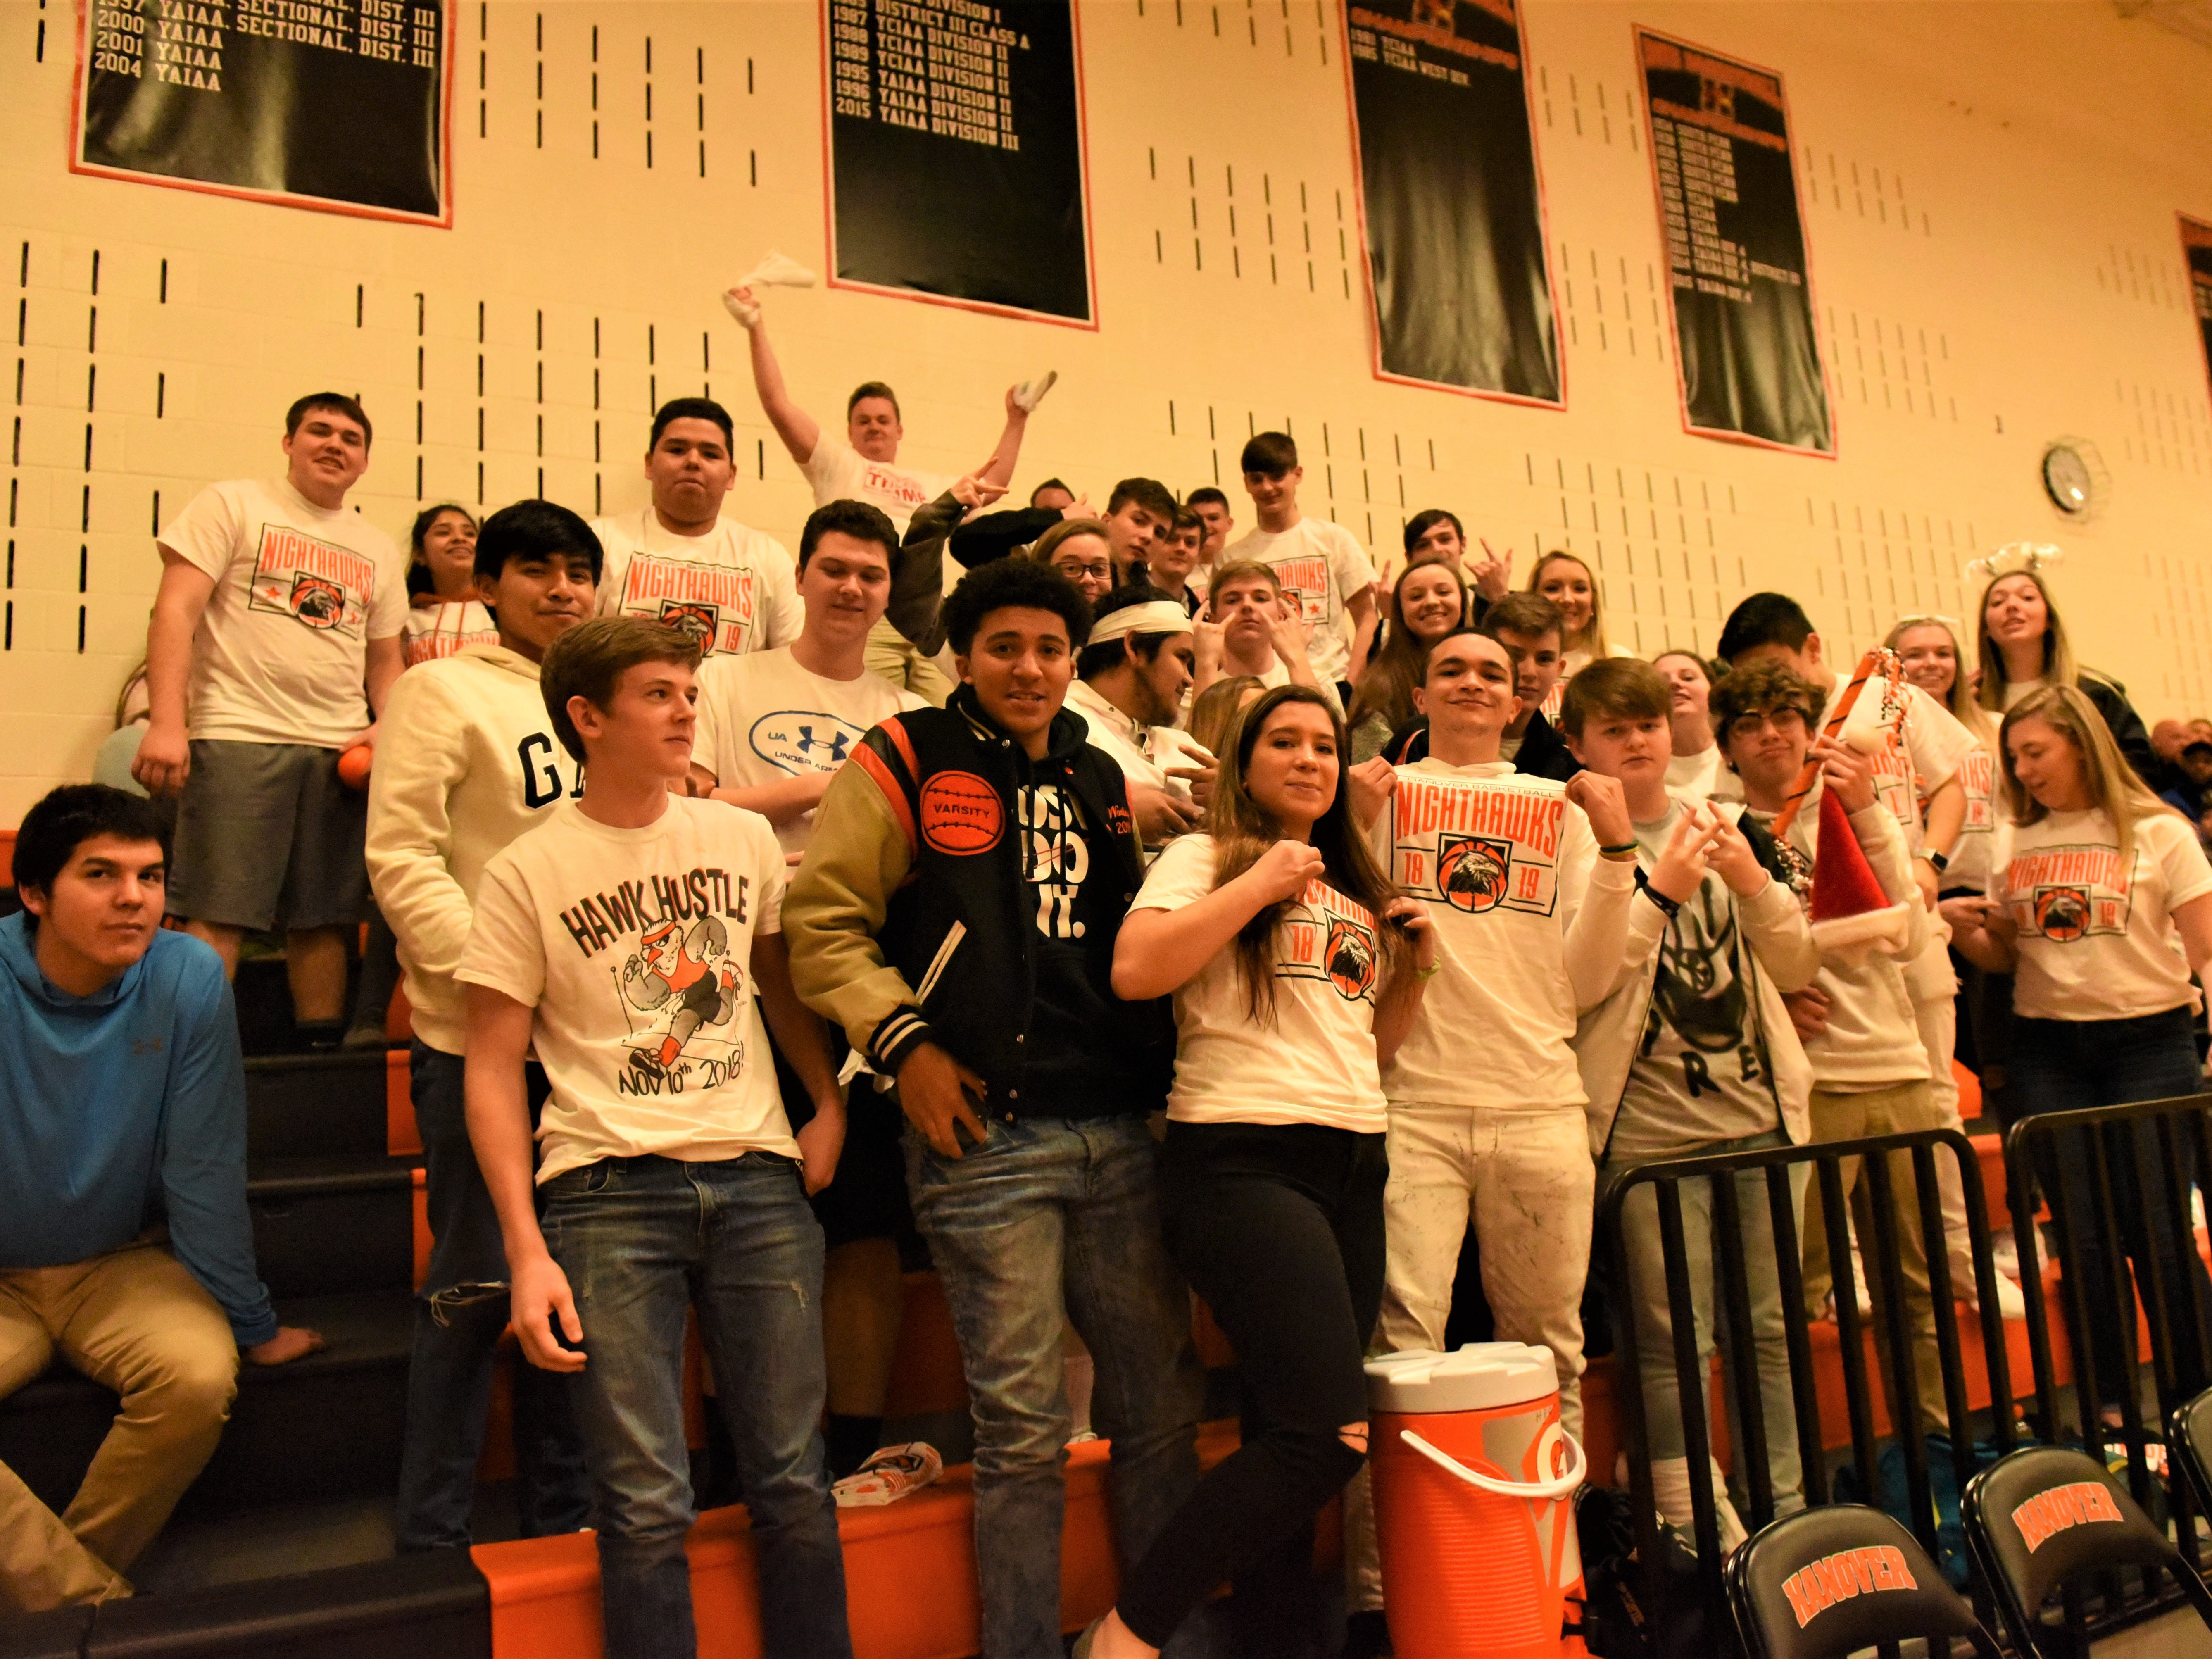 Hanover High School student section is in dressed for the white-out. Fairfield High School lost at Hanover High School on Dec. 21, 57 to 43.